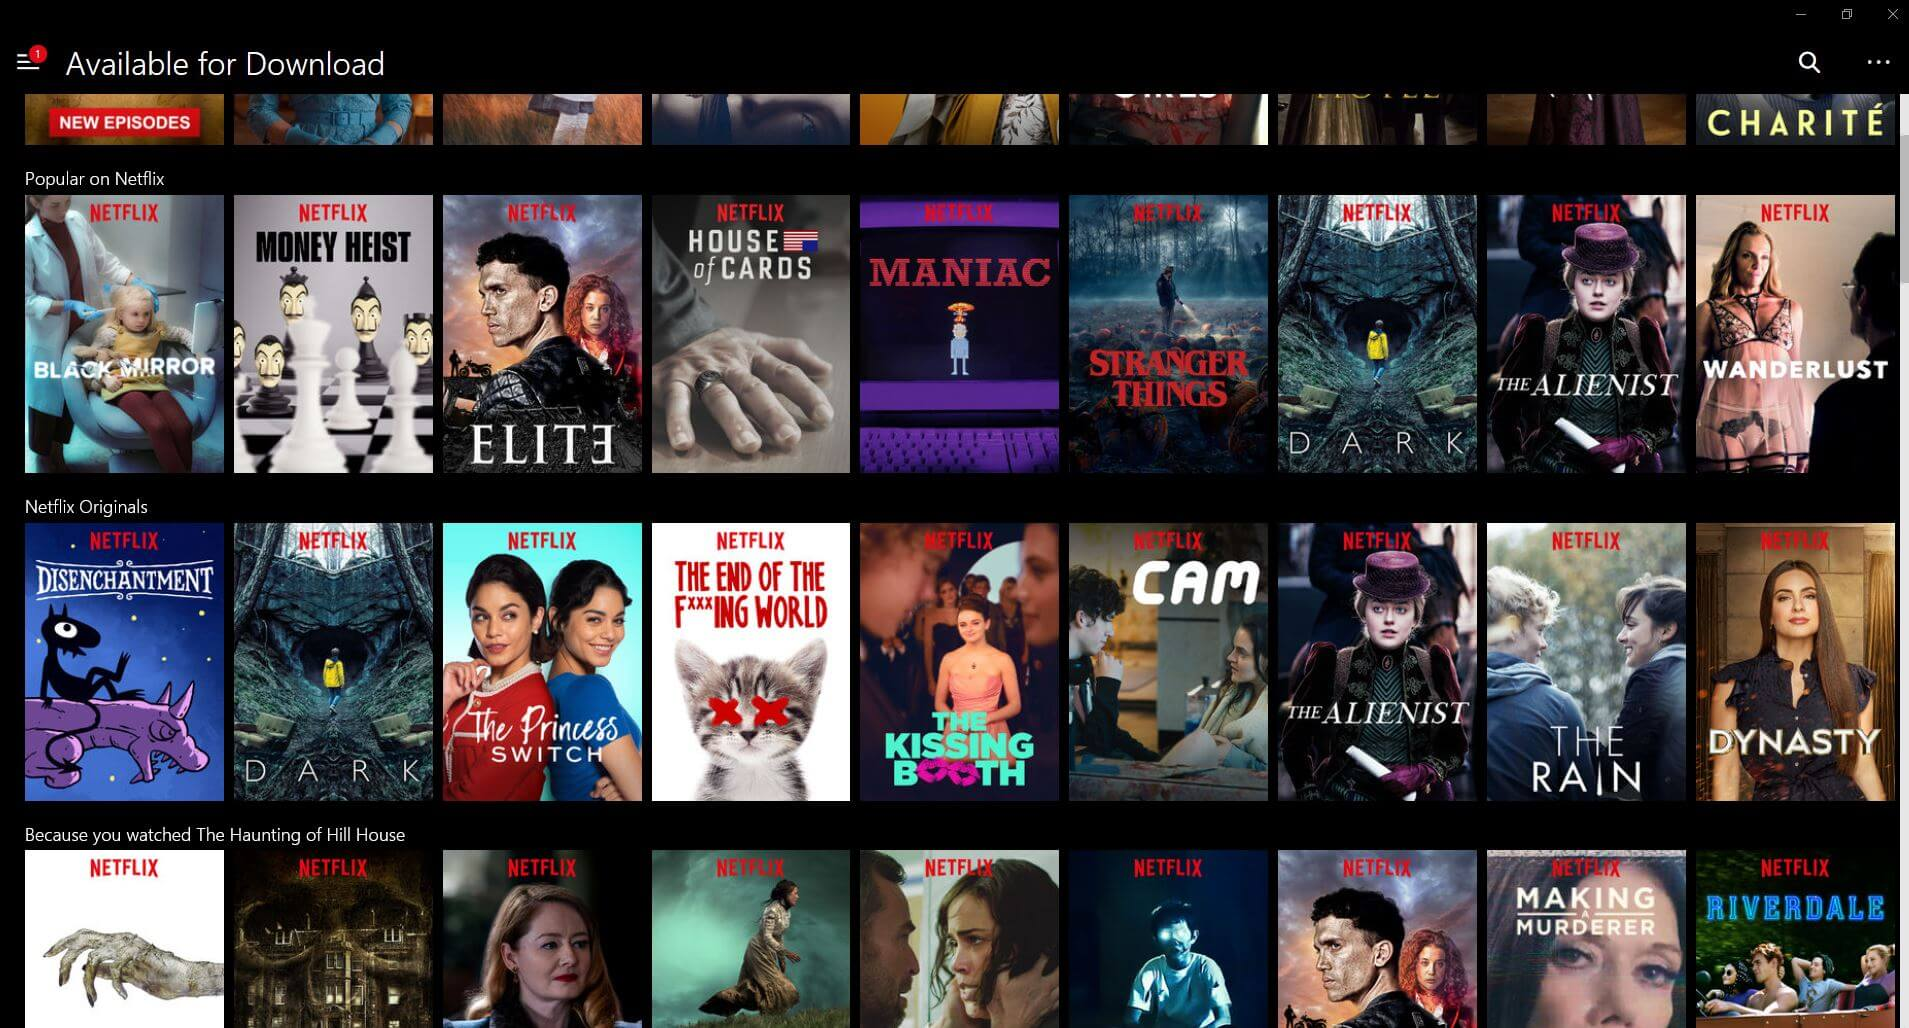 Netflix-Serien downloaden: Screenshot von der App